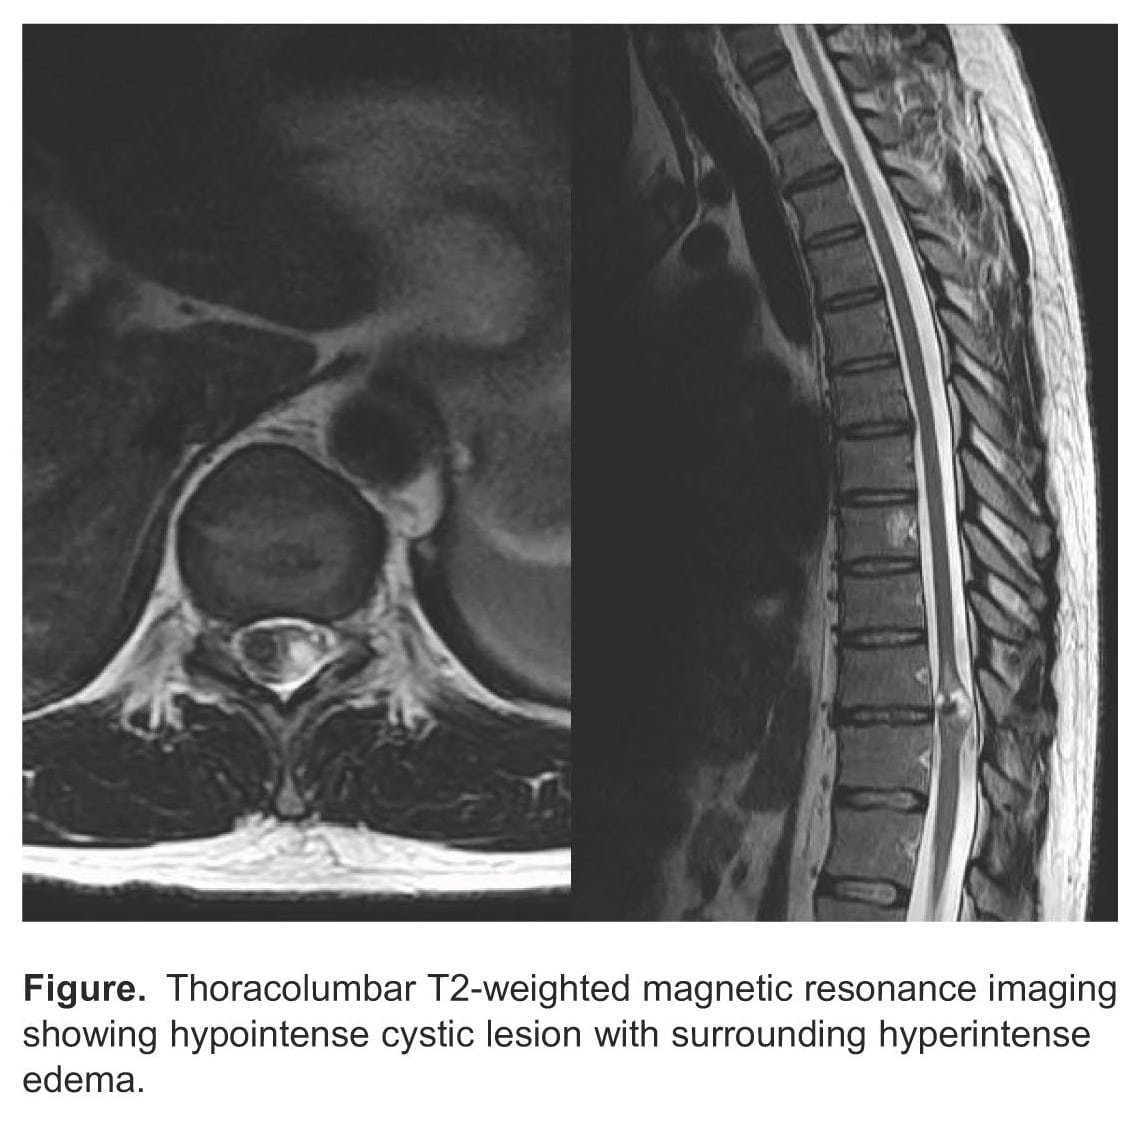 Intramedullary Spinal Neurocysticercosis Presenting as Brown-Sequard Syndrome